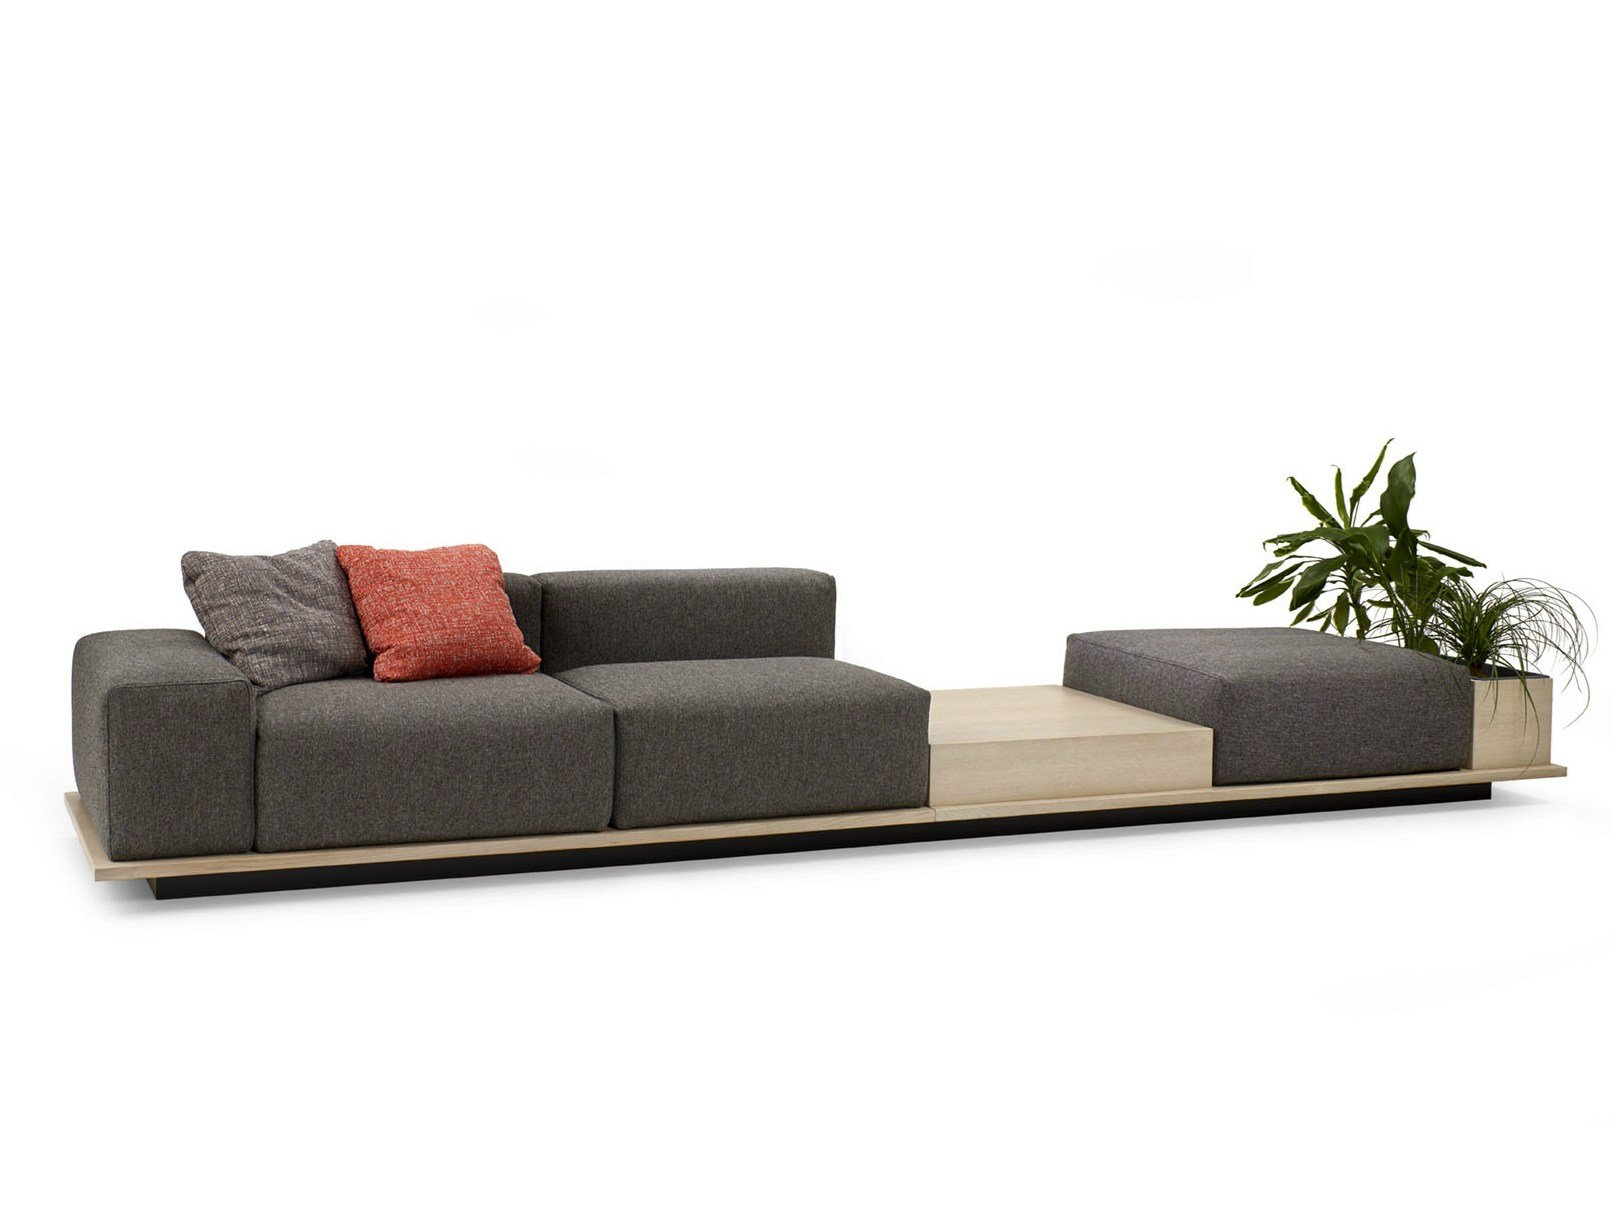 D coration canape modulable robin 19 clermont ferrand for Canape modulable conforama